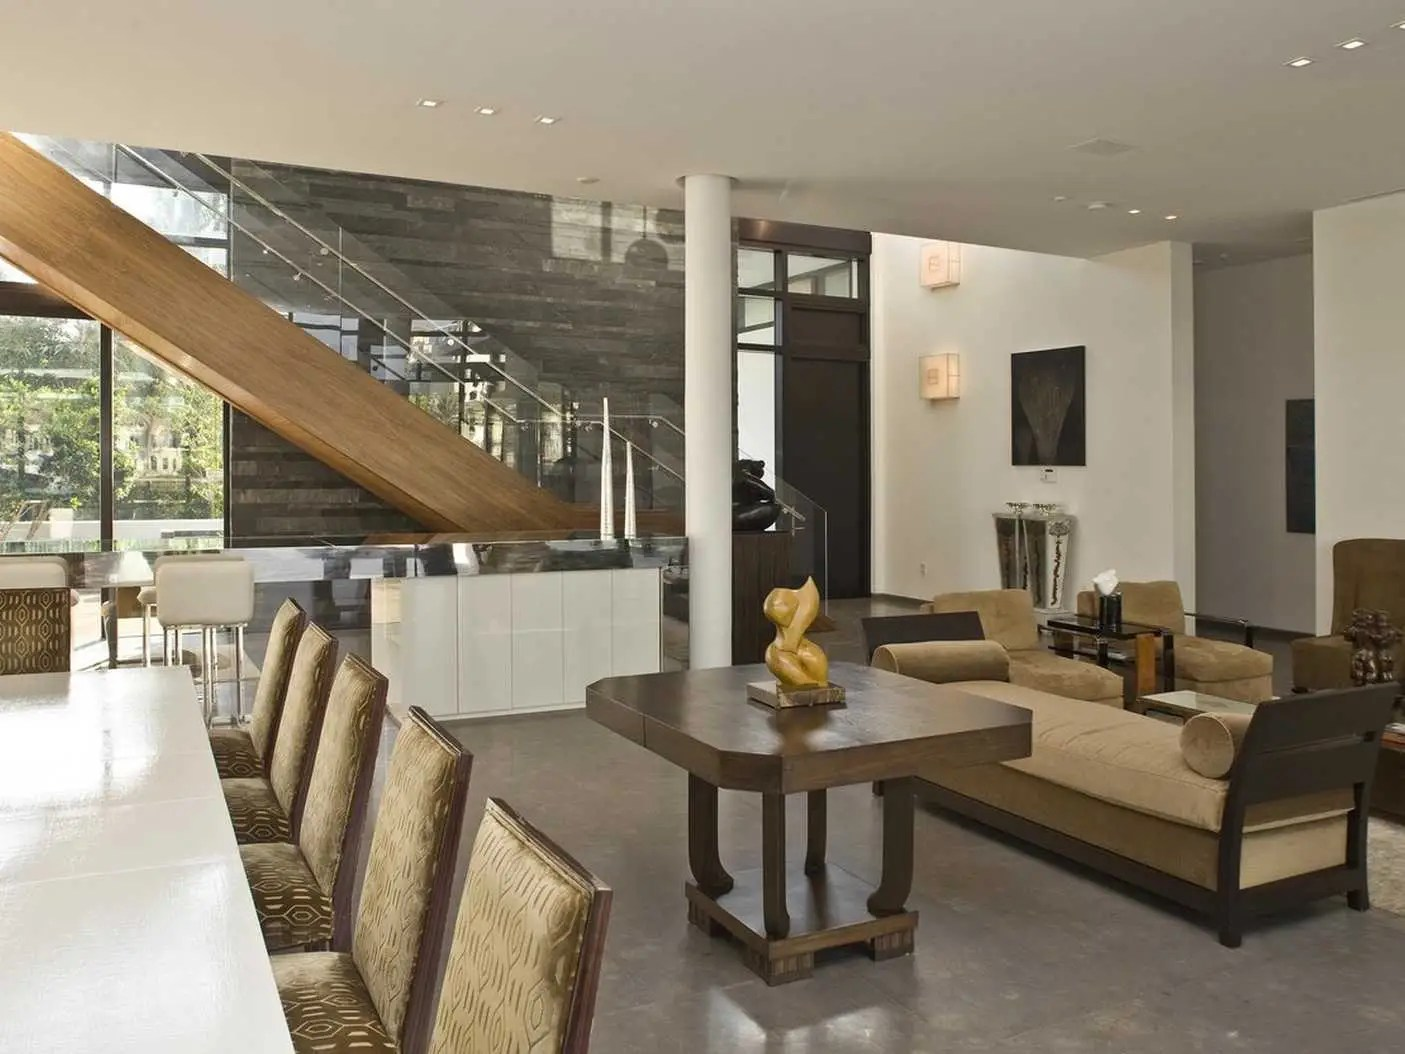 Inside, the living, dining and kitchen areas are combined in one large space with gray limestone flooring and stark white walls. The home has six bedrooms and nine bathrooms.